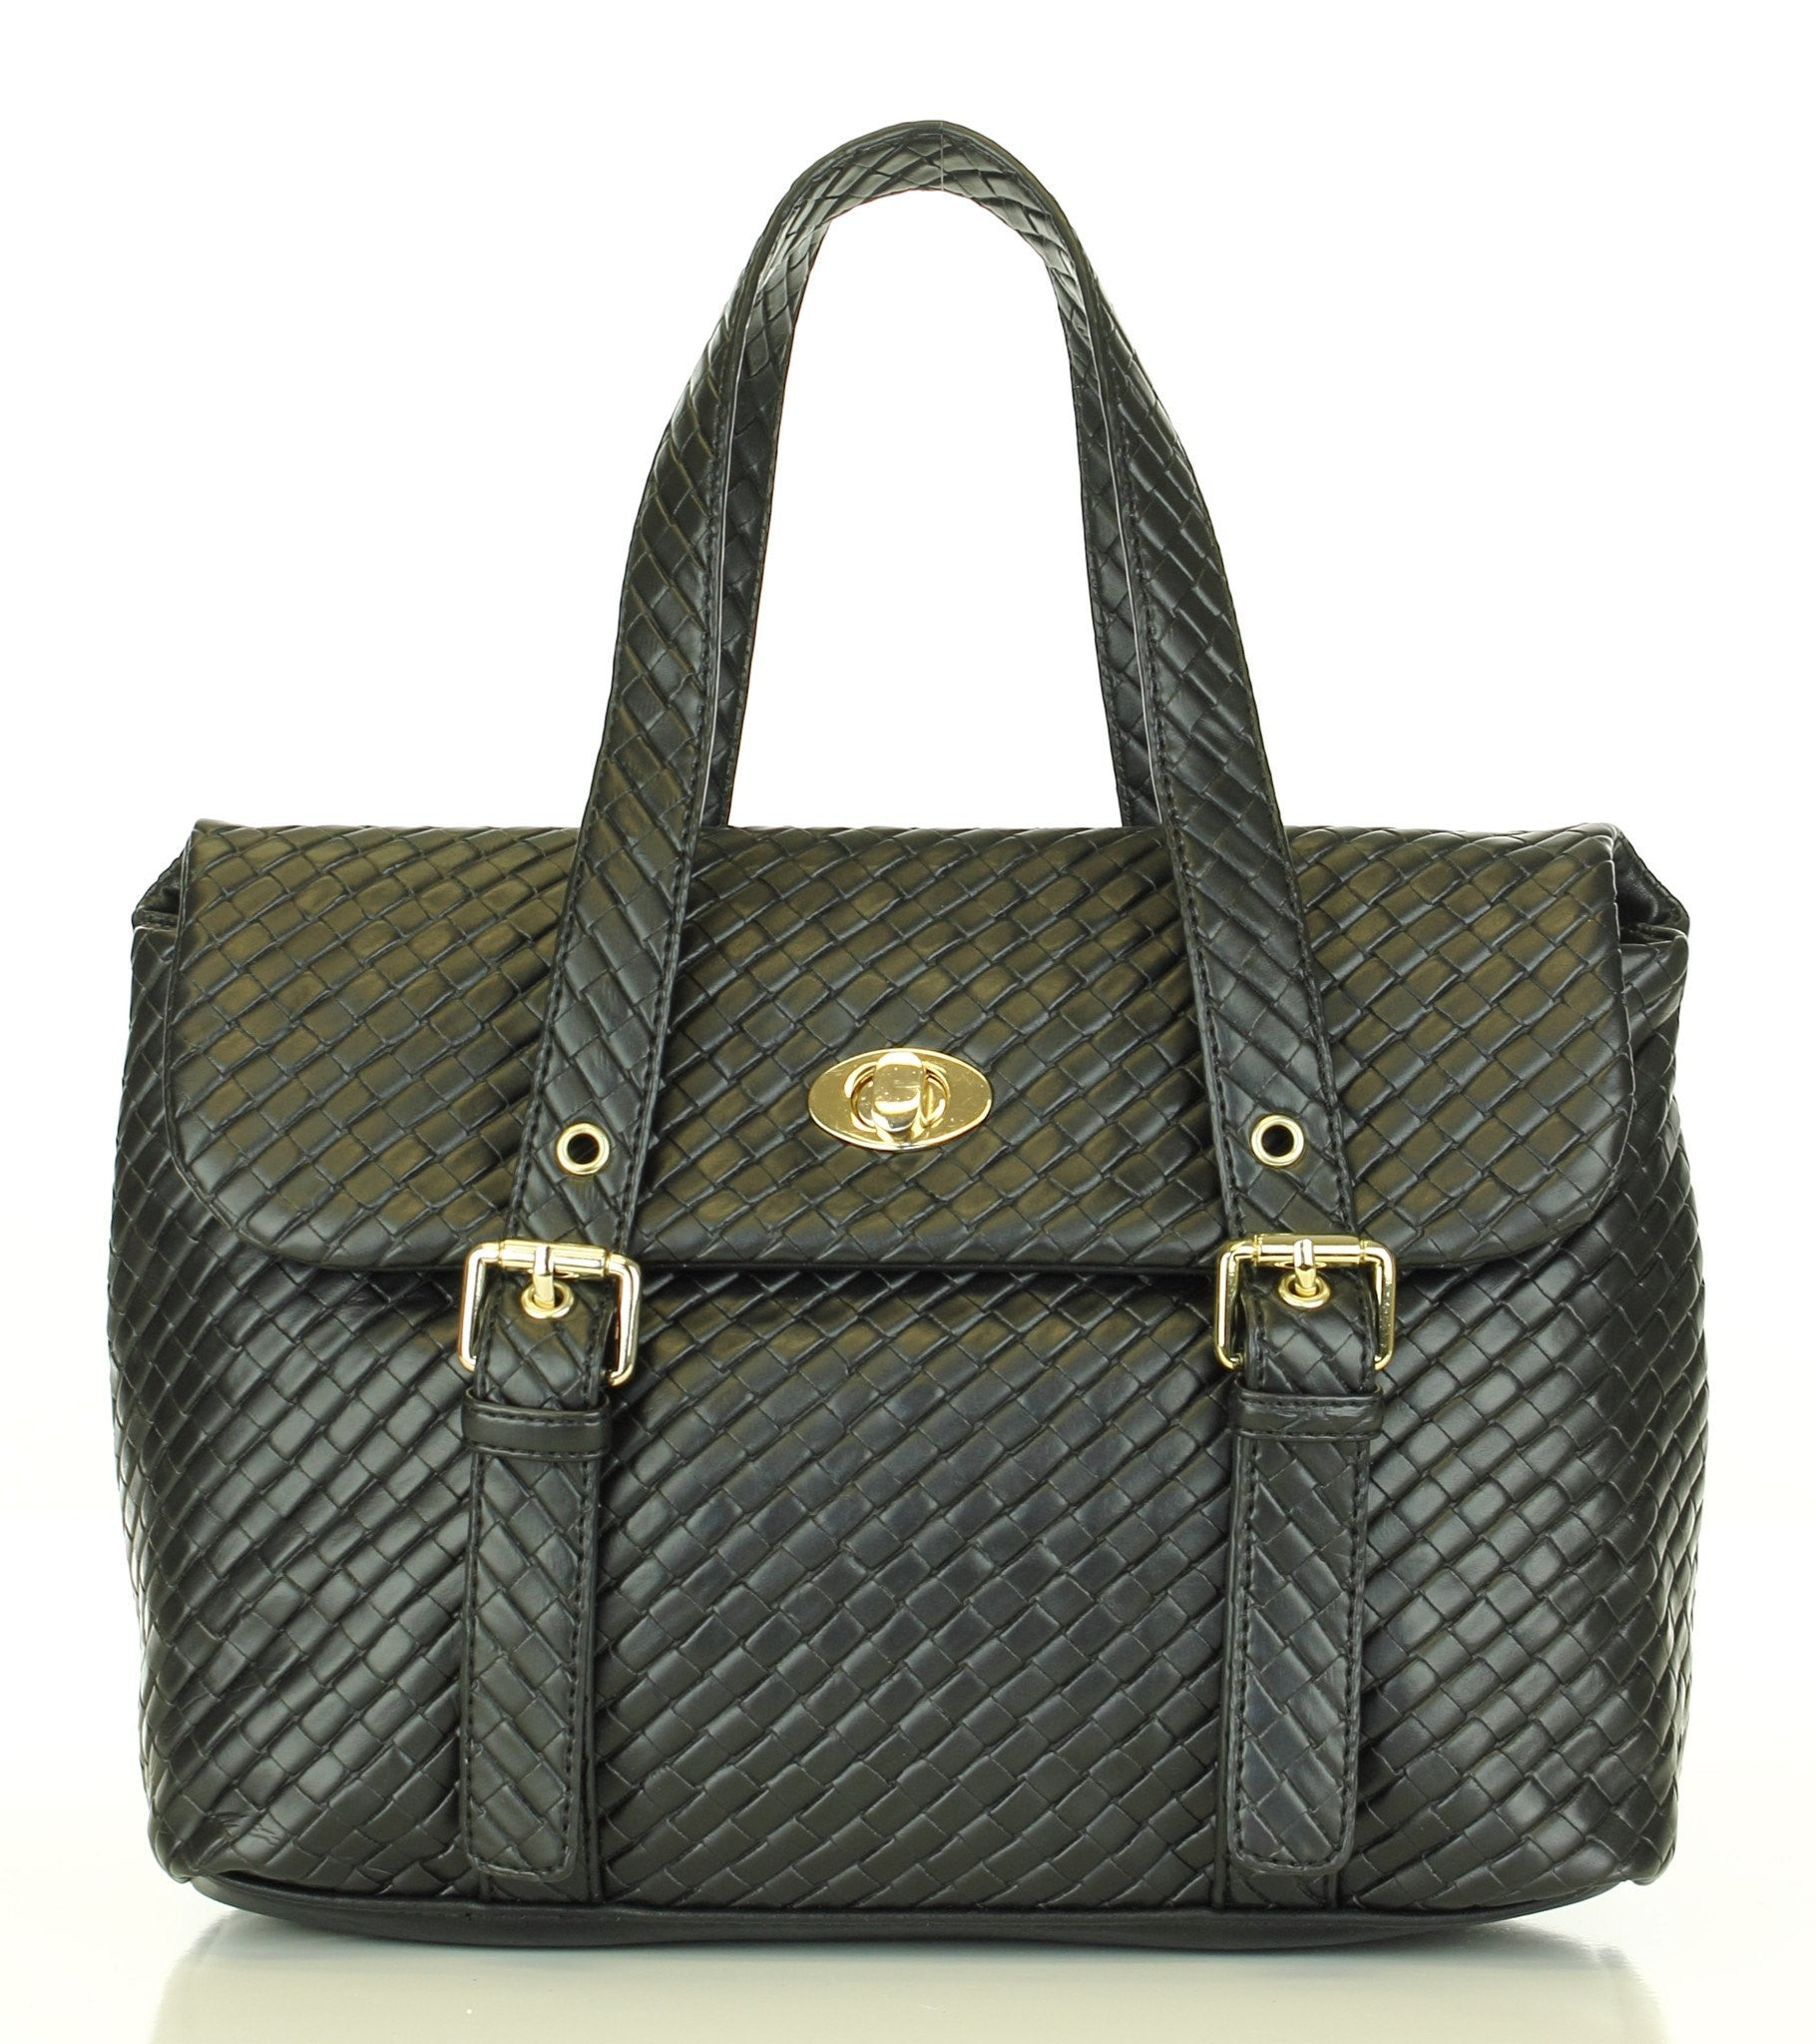 Weave Texture Looker Satchel Handbag